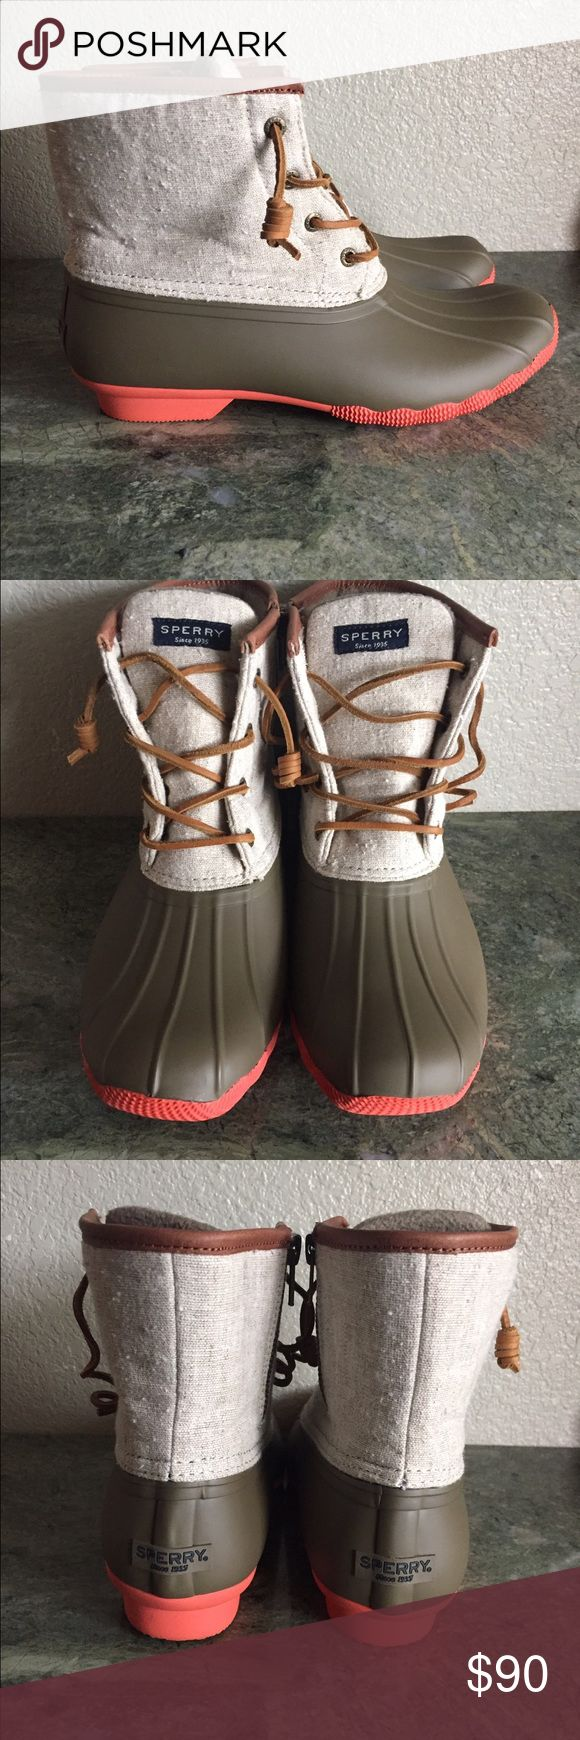 New! Women's Sperry Saltwater Duck Boots sz 9 Brand new! Only tried on  Women size 9 No box.... I sell cheaper on mer.ca.ri. Sperry Shoes Winter & Rain Boots